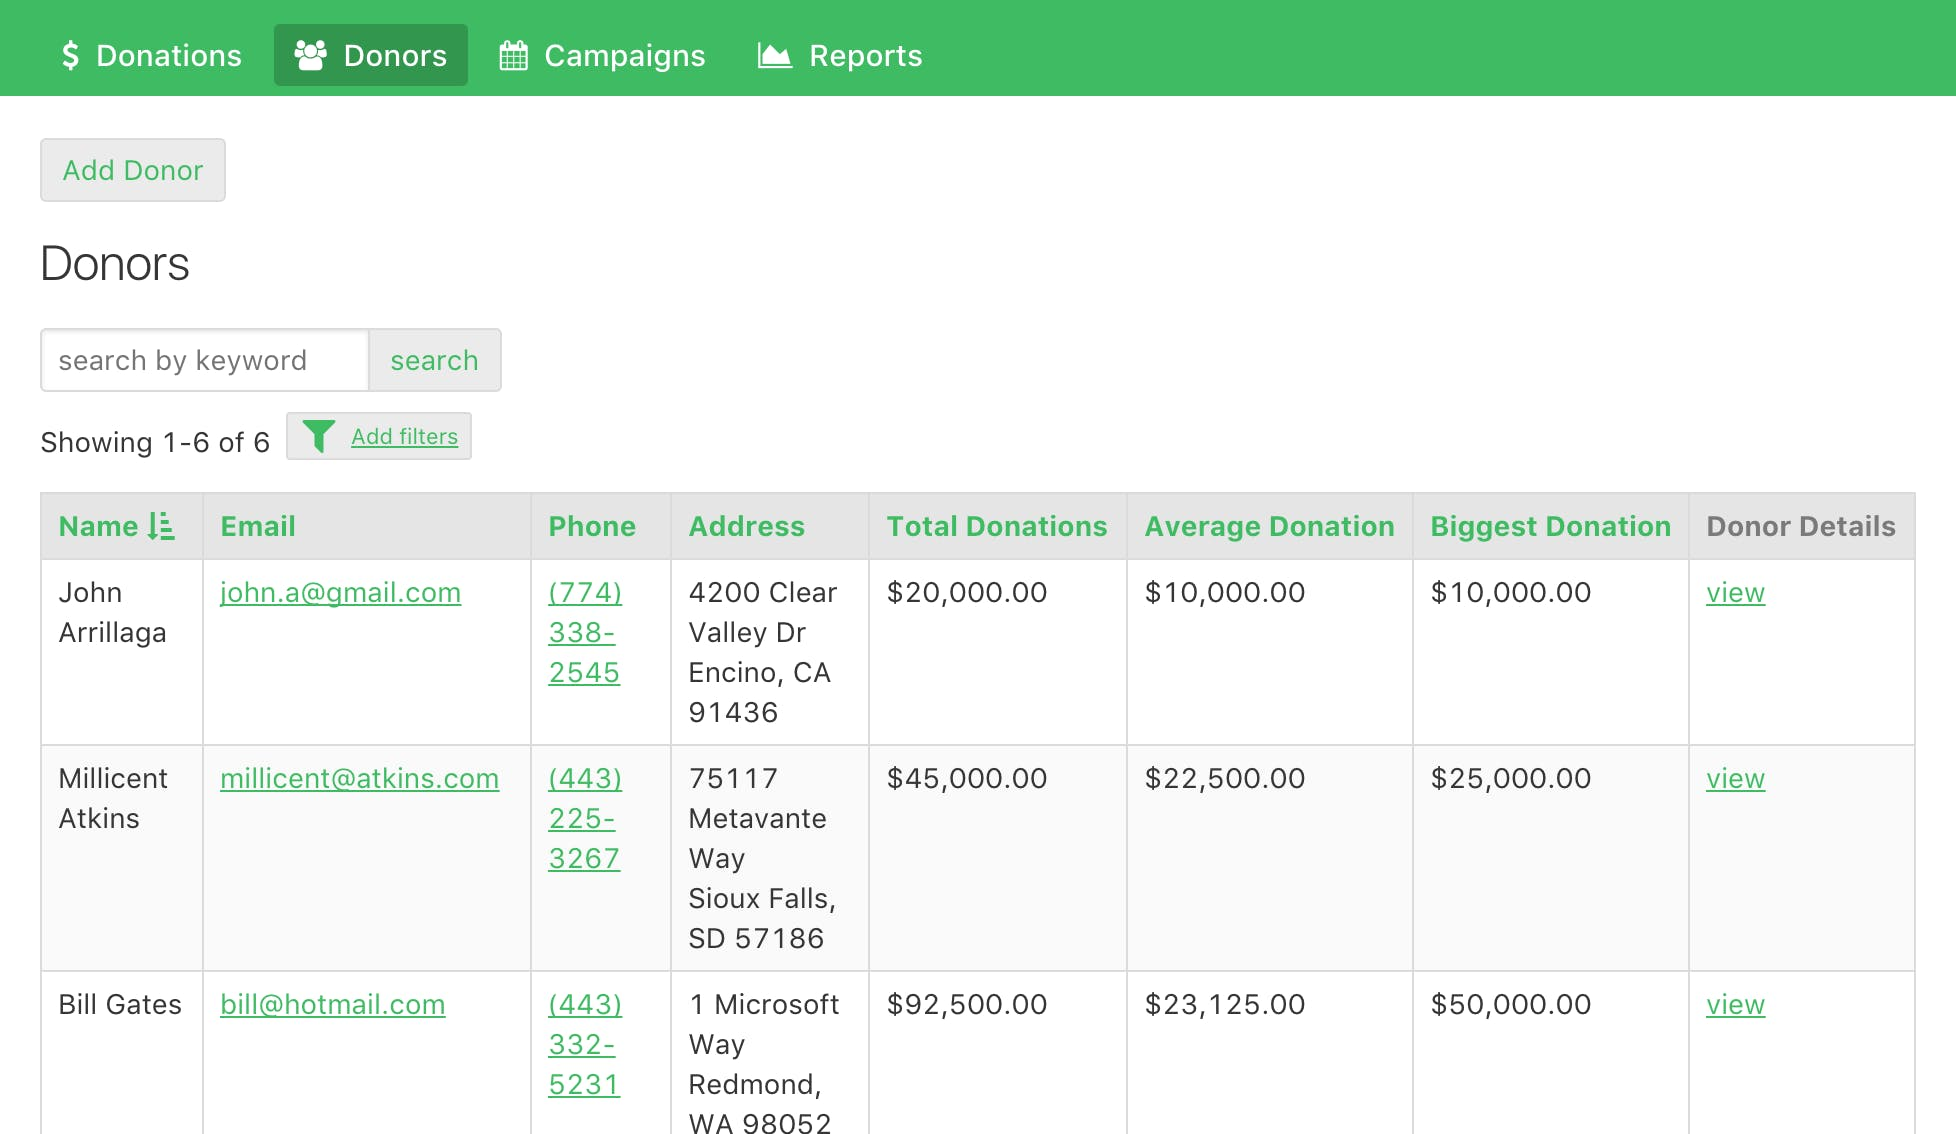 View each donor's donation history and add any relevant notes for that donor.